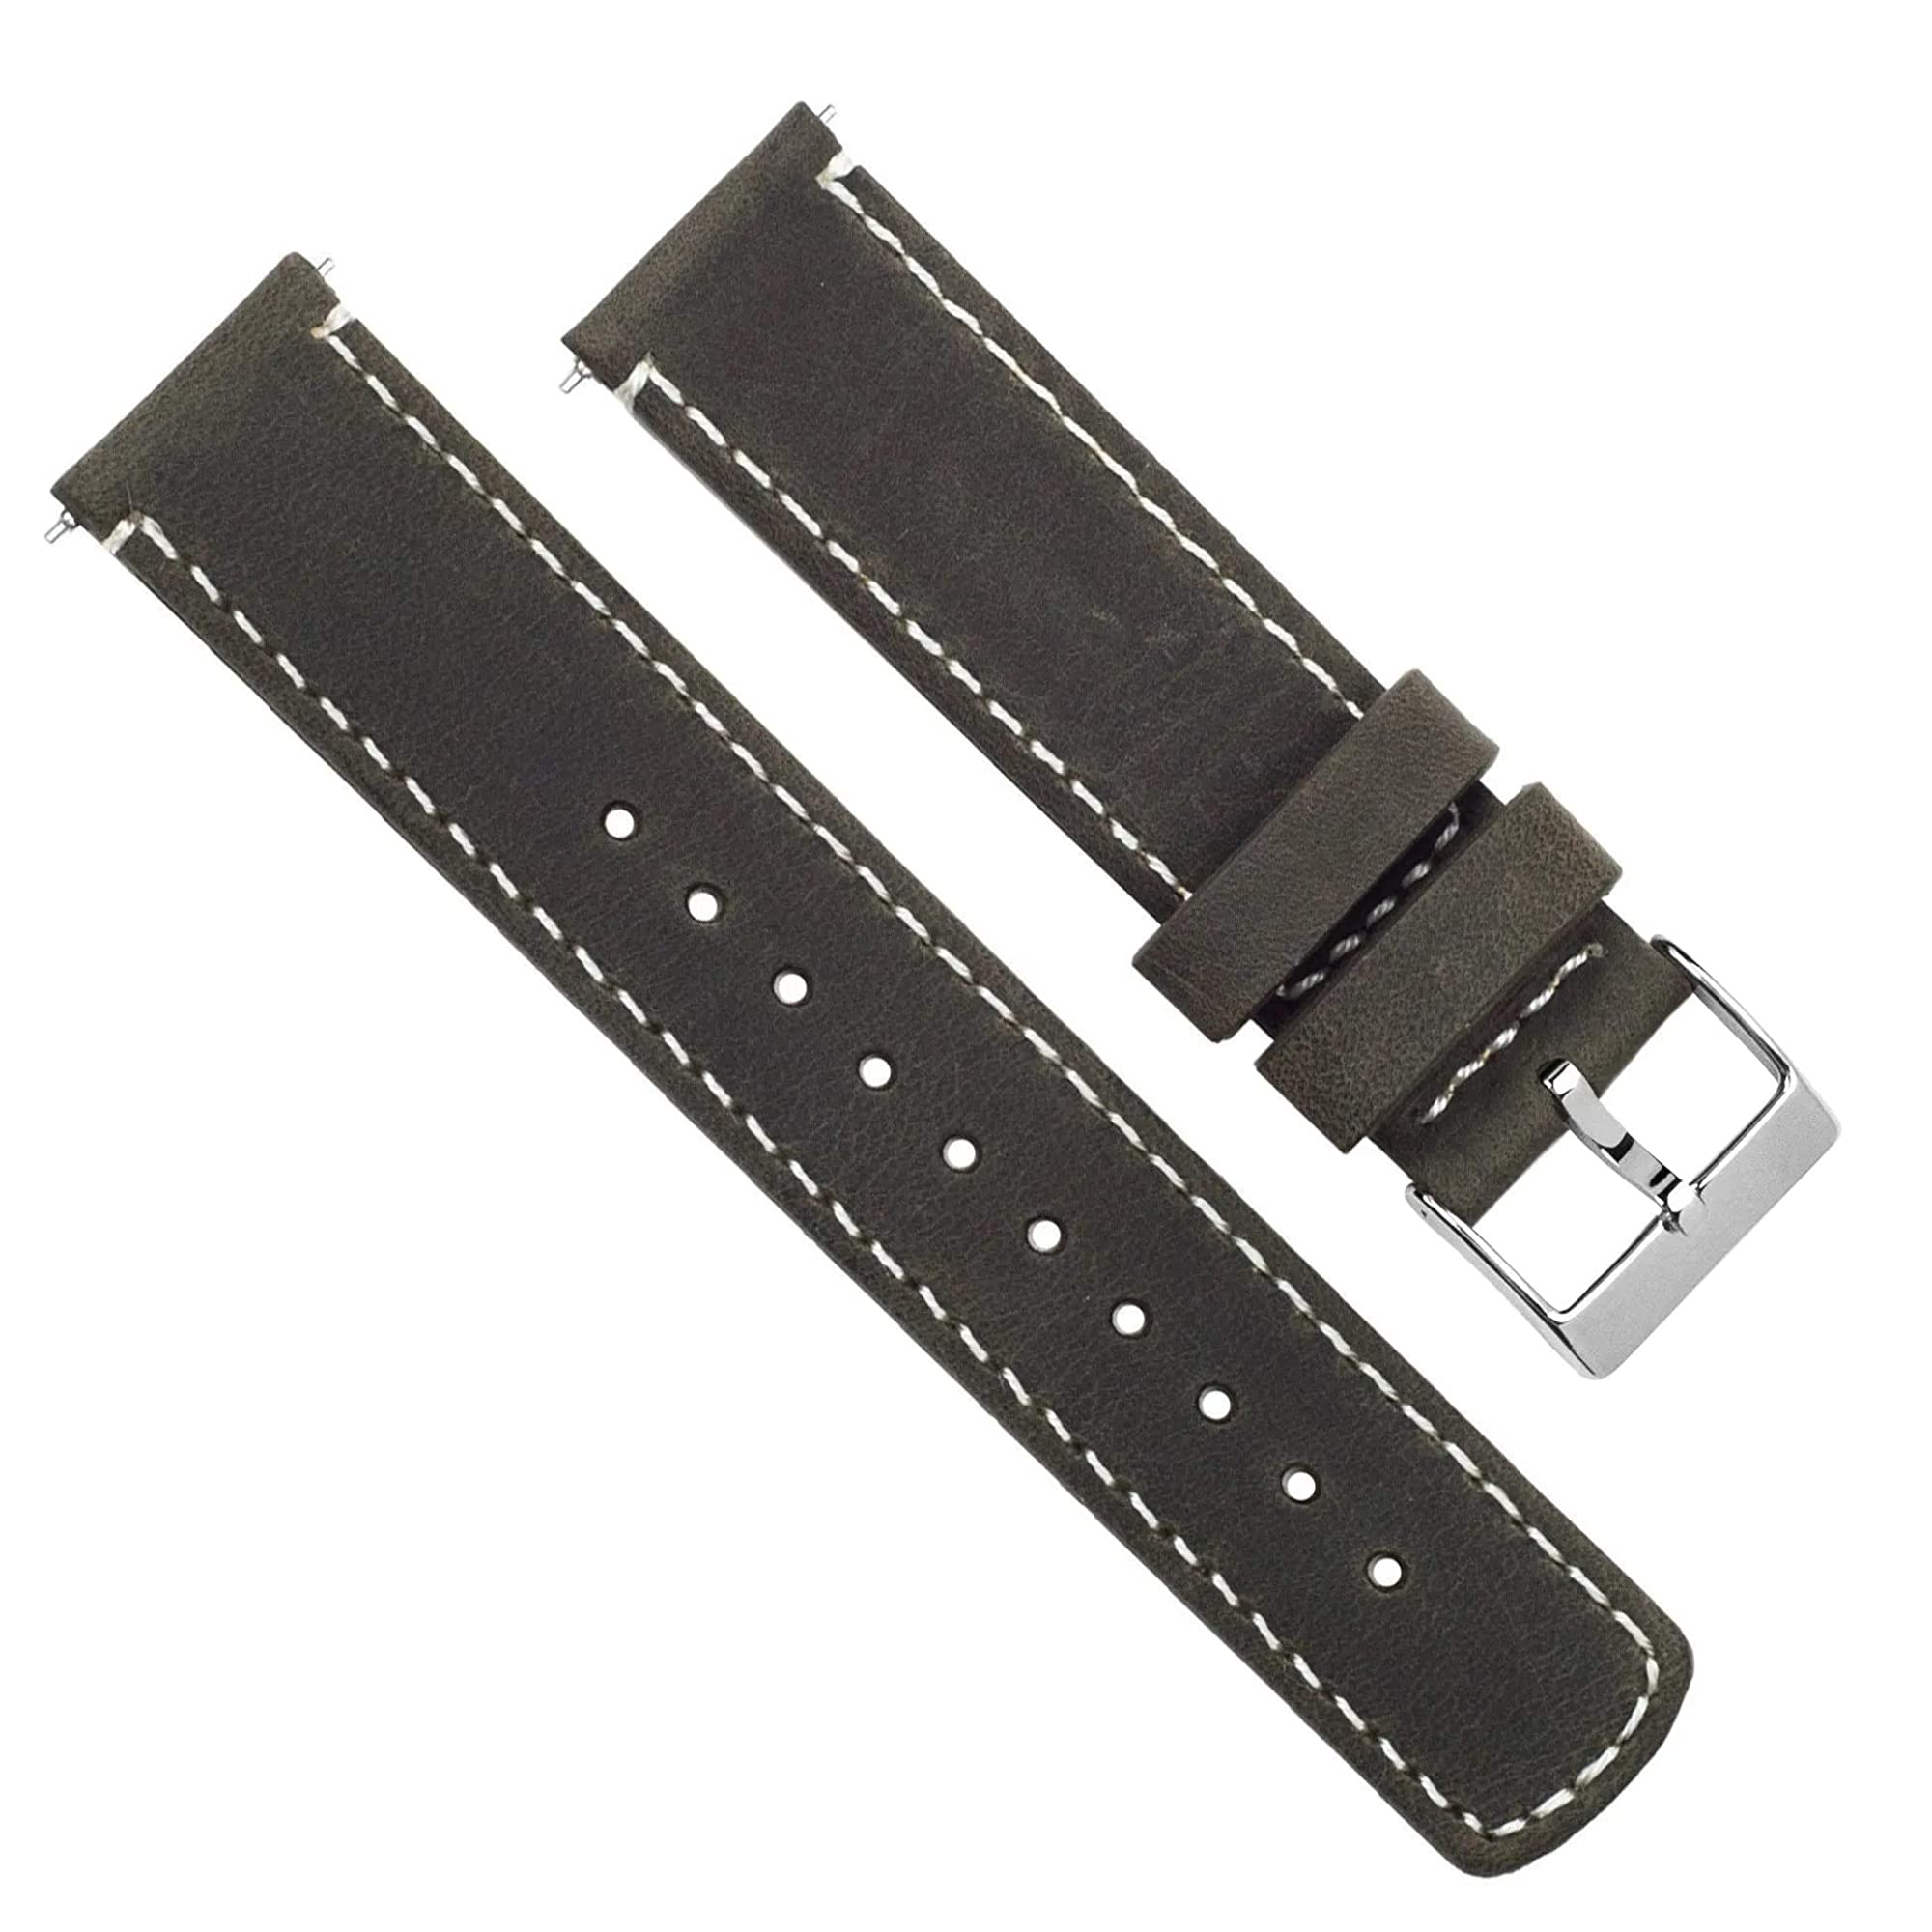 Unisex Leather Bands With Lining For Watches